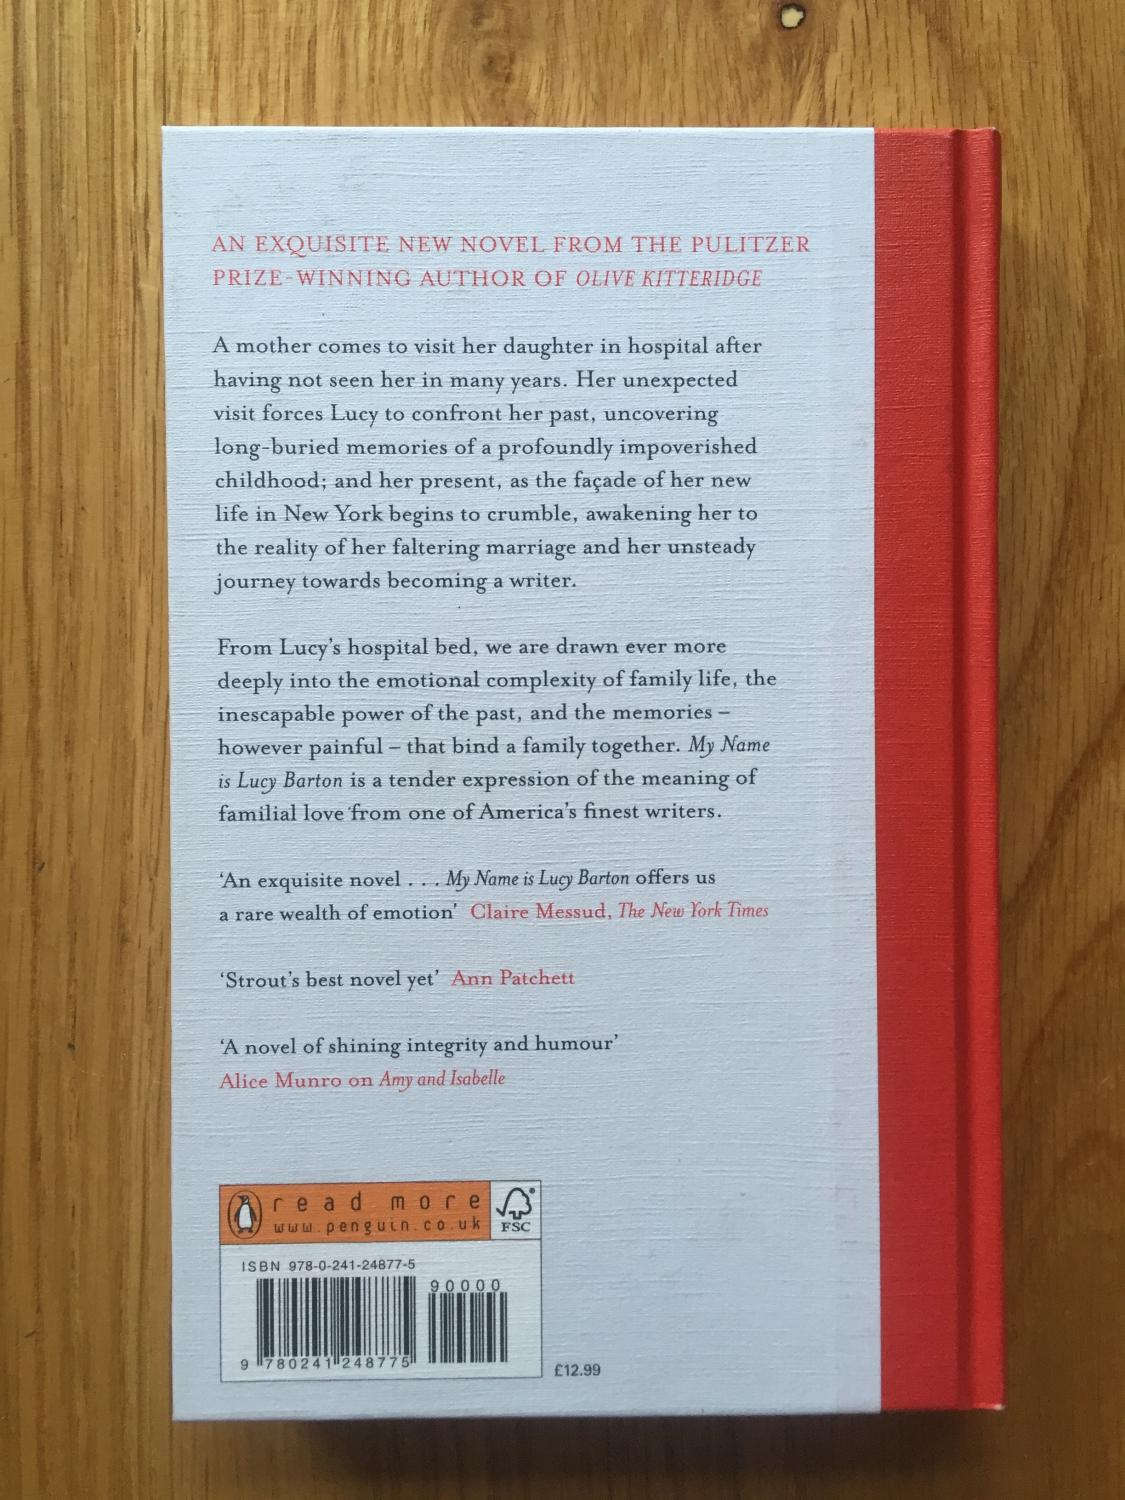 my name is lucy barton by elizabeth strout viking 9780241248775